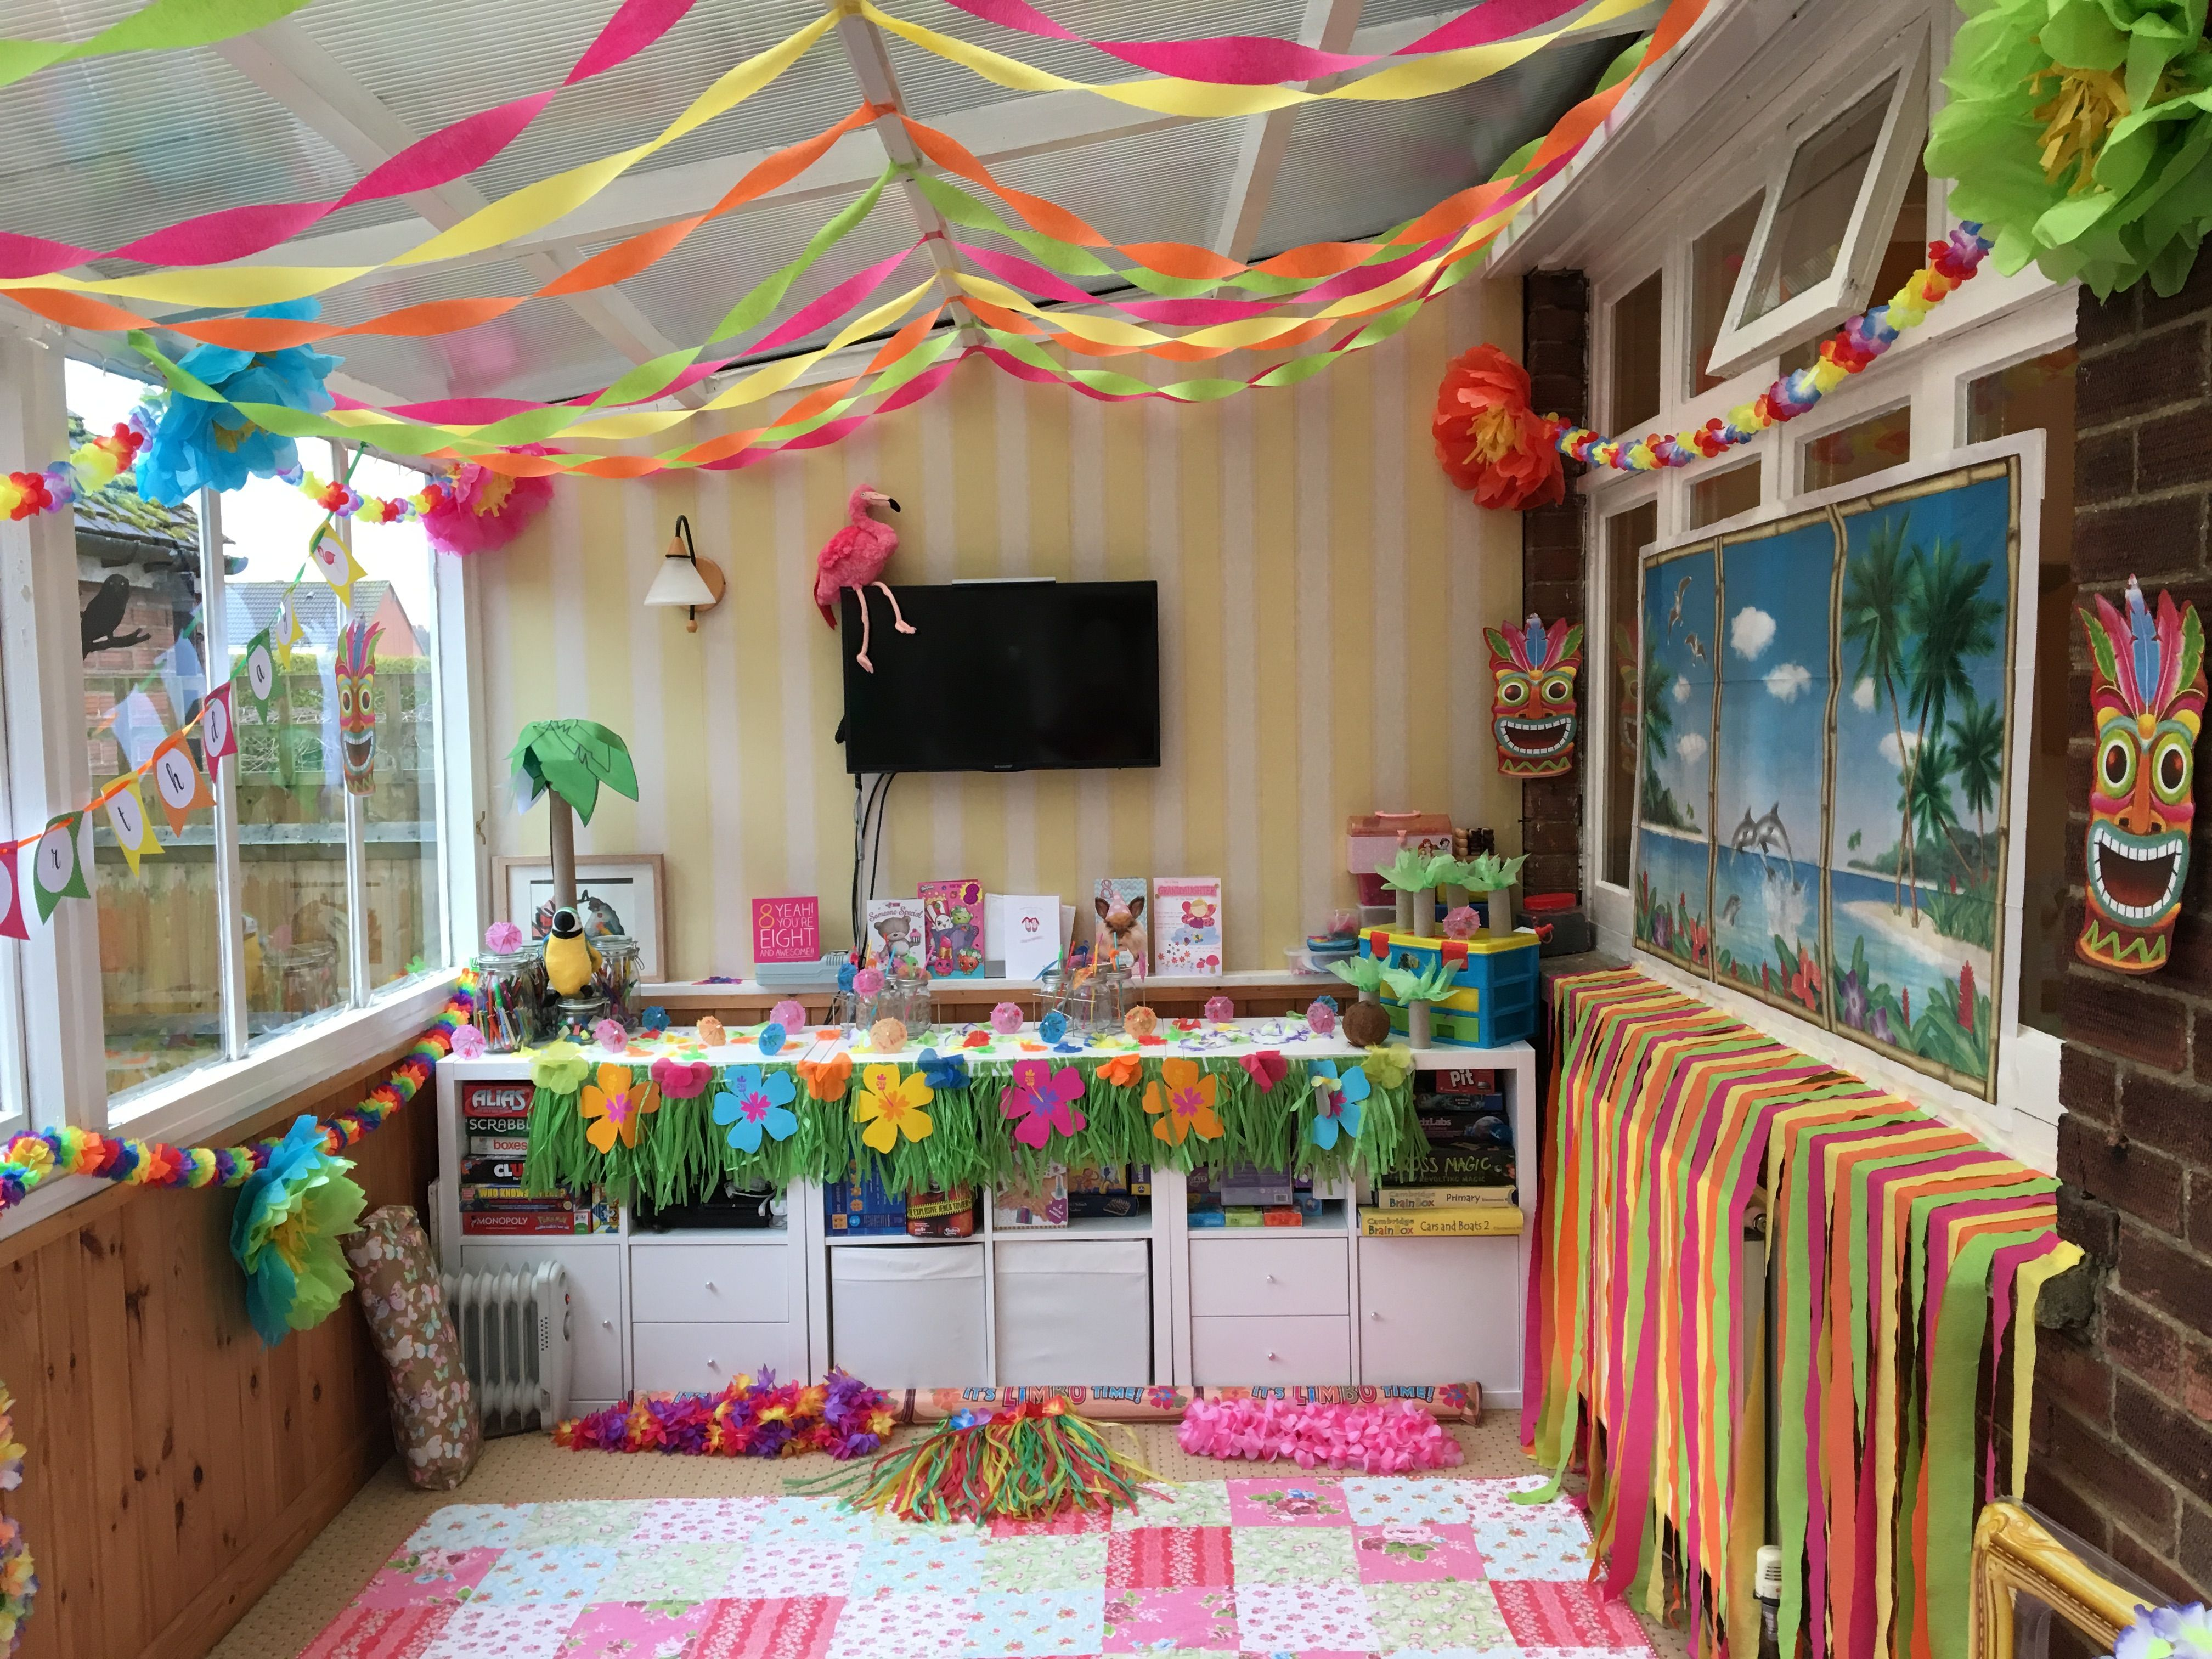 Our Old Conservatory Turned Into Hawaiian Party Room